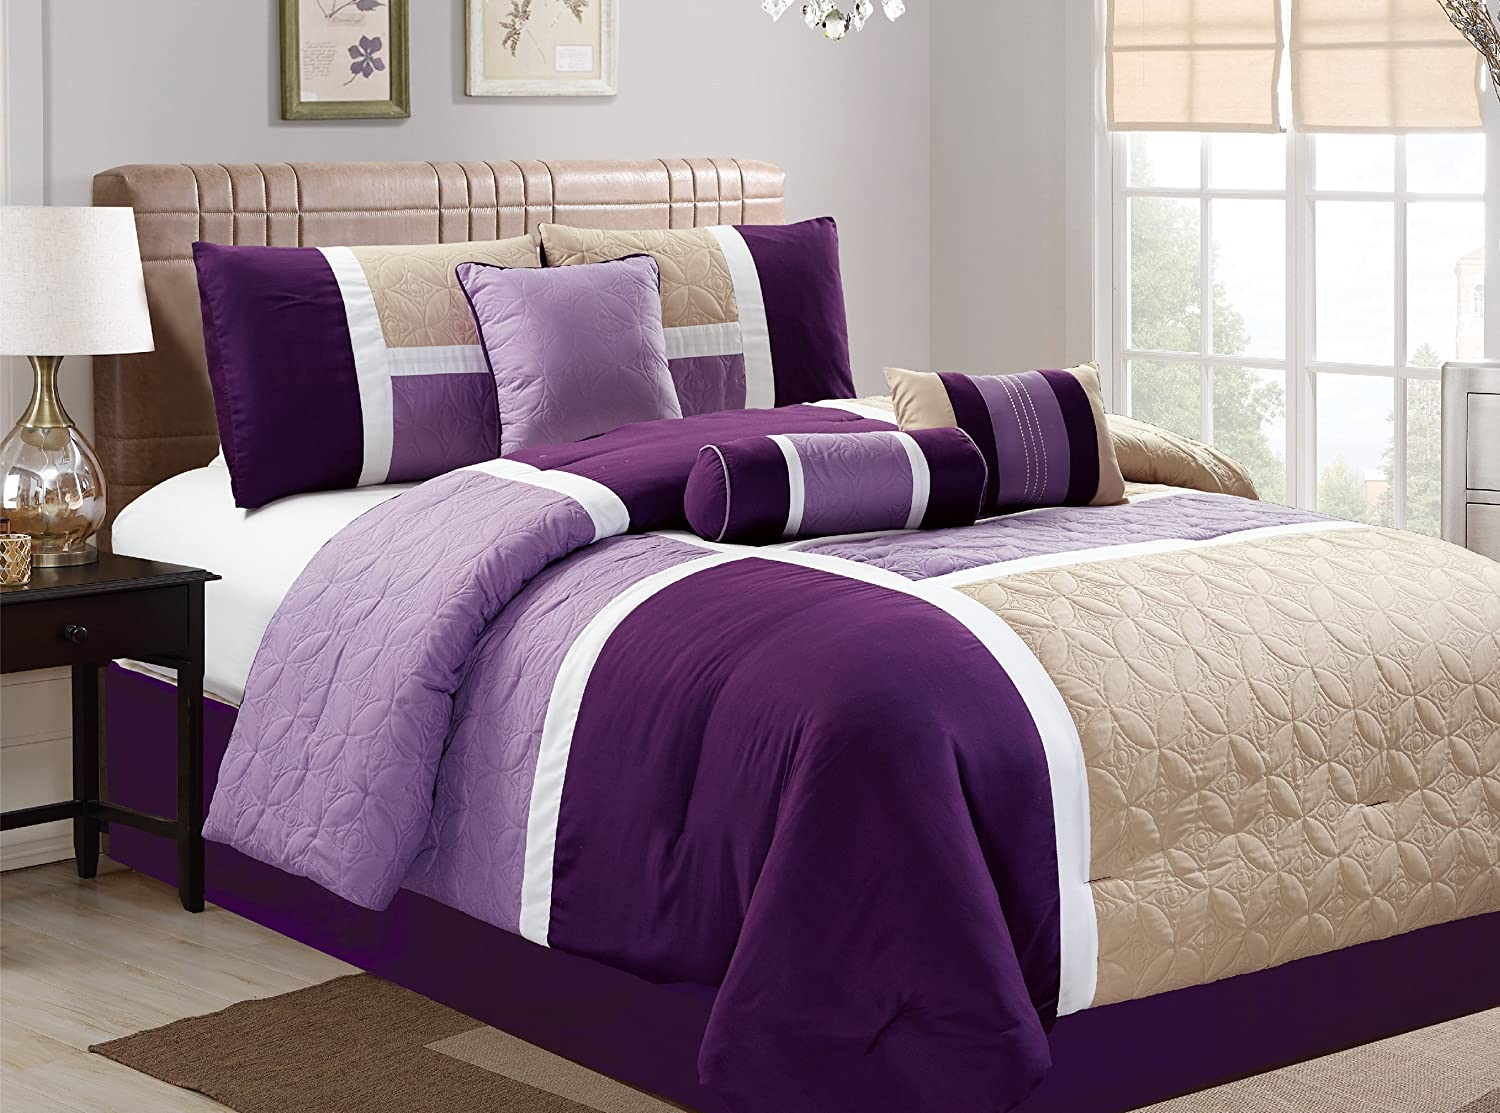 Dovedote 20617 K 7 Piece Luxury Microfiber Quilted Patchwork Comforter Set, Purple, King,